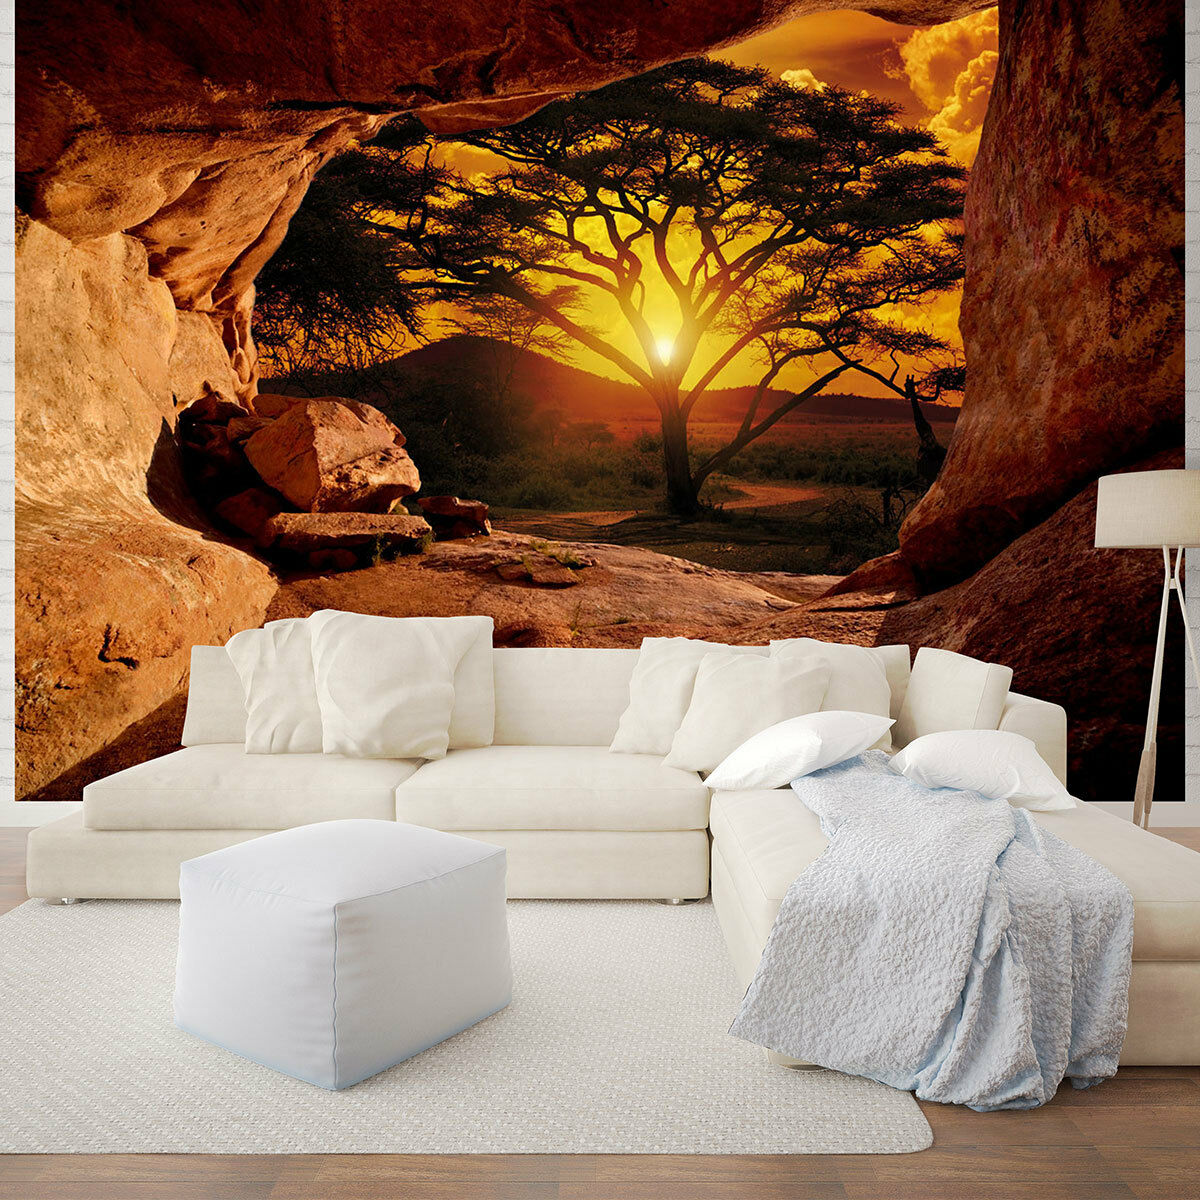 vlies tapeten fototapete foto afrika baum sonnenuntergang. Black Bedroom Furniture Sets. Home Design Ideas